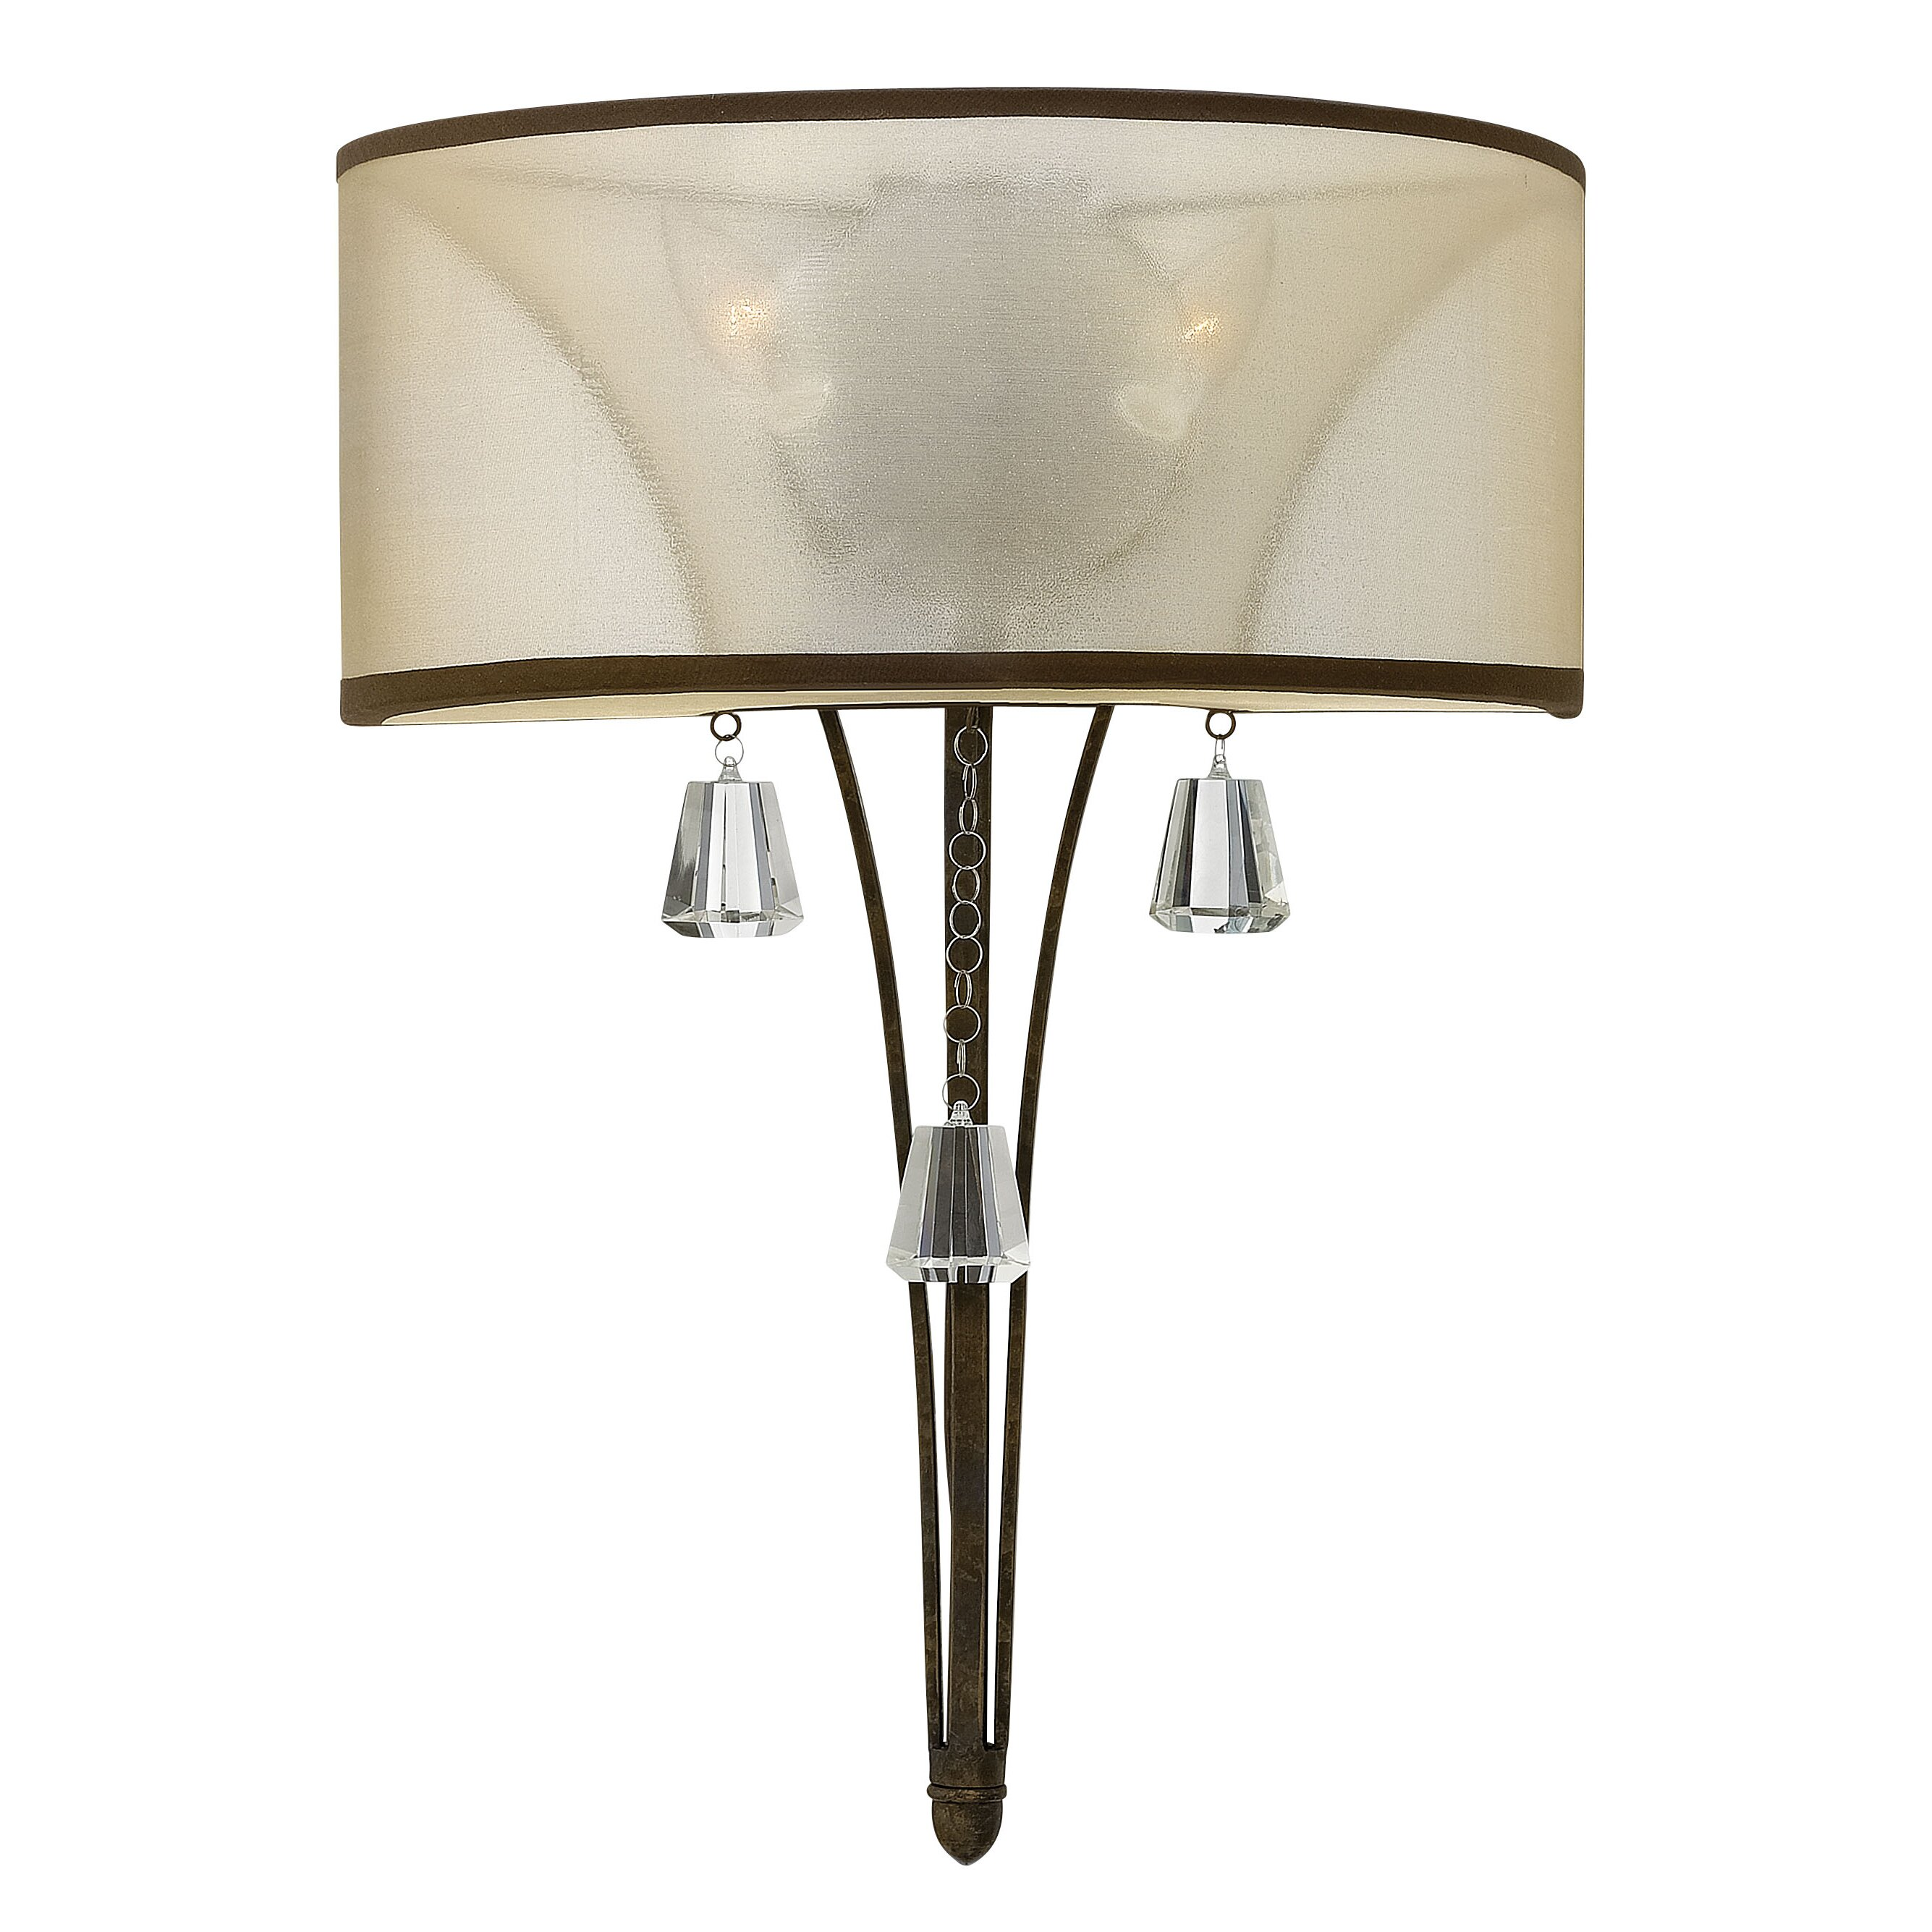 Hinkley Bathroom Wall Sconces : Hinkley Lighting Mime 2 Light Wall Sconce & Reviews Wayfair.ca